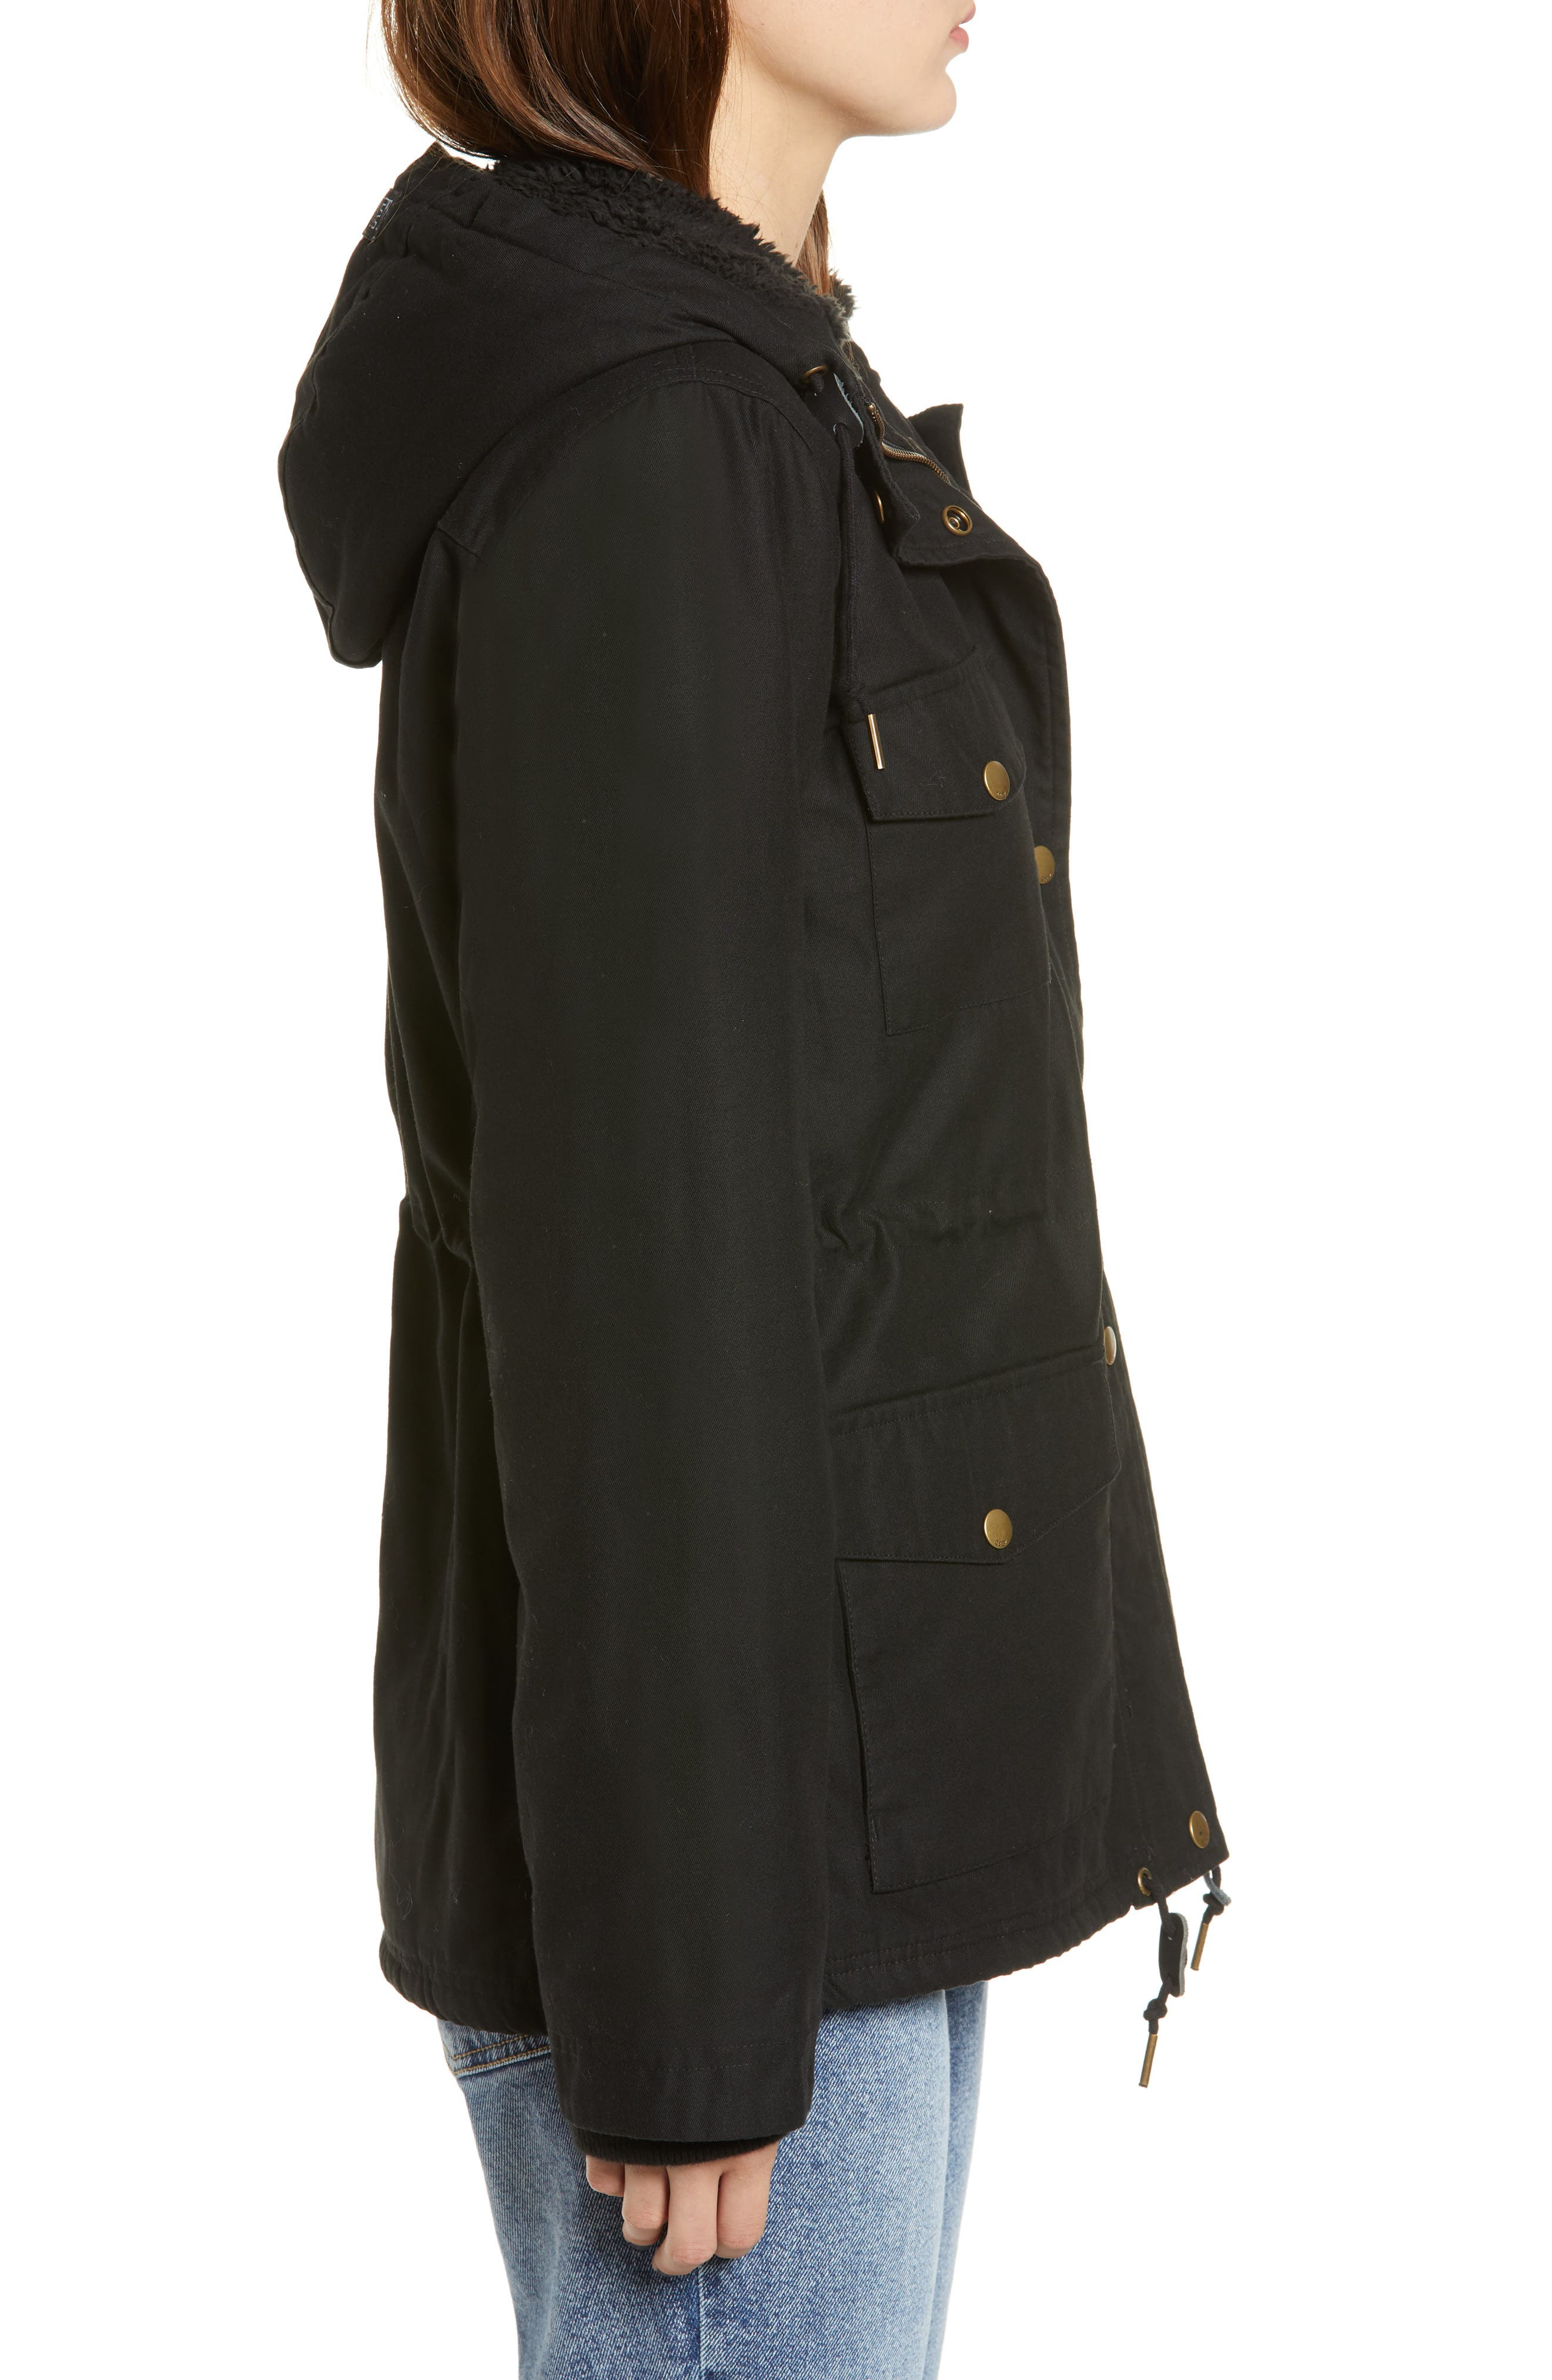 Pistol Water-Resistant Jacket,                             Alternate thumbnail 3, color,                             001